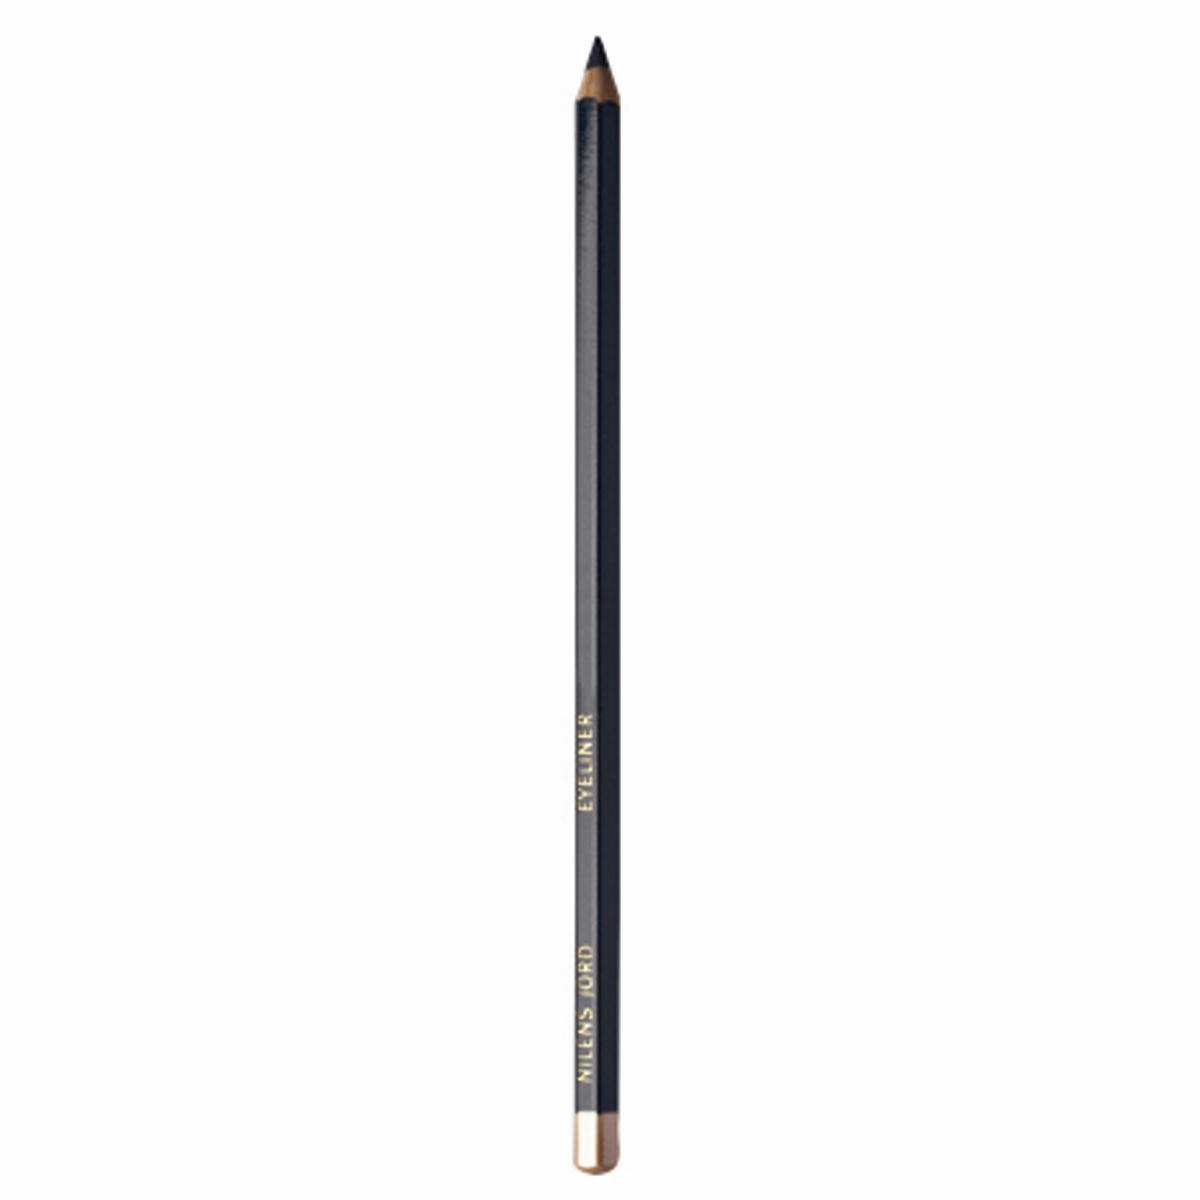 Nilens Jord Grey Eyeliner Pencil